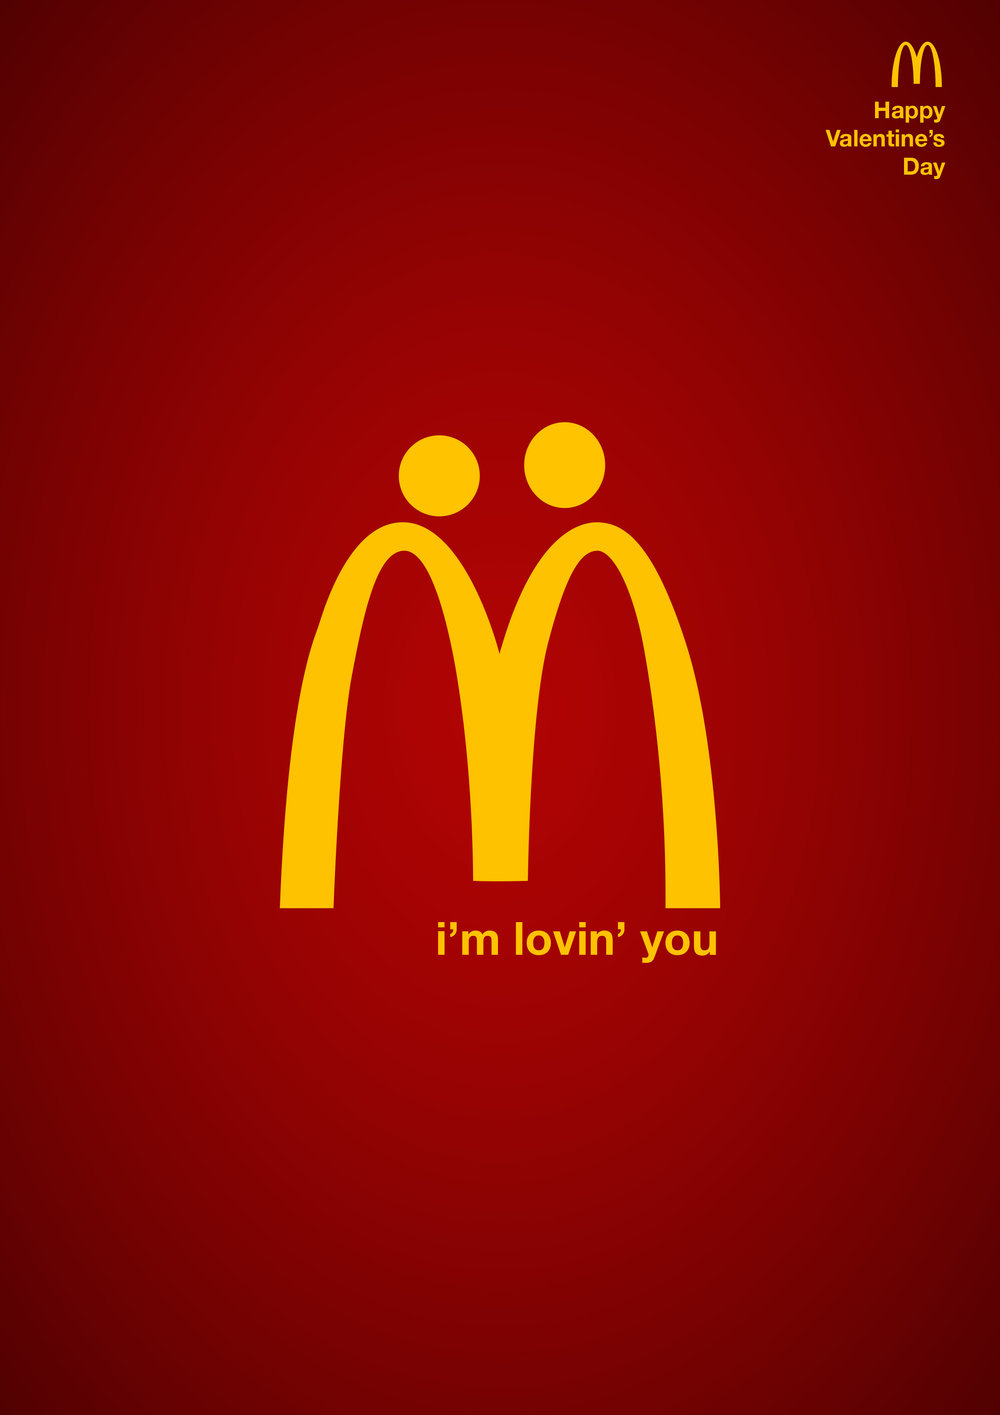 Poster ADS for Valentine's Day @McDonald